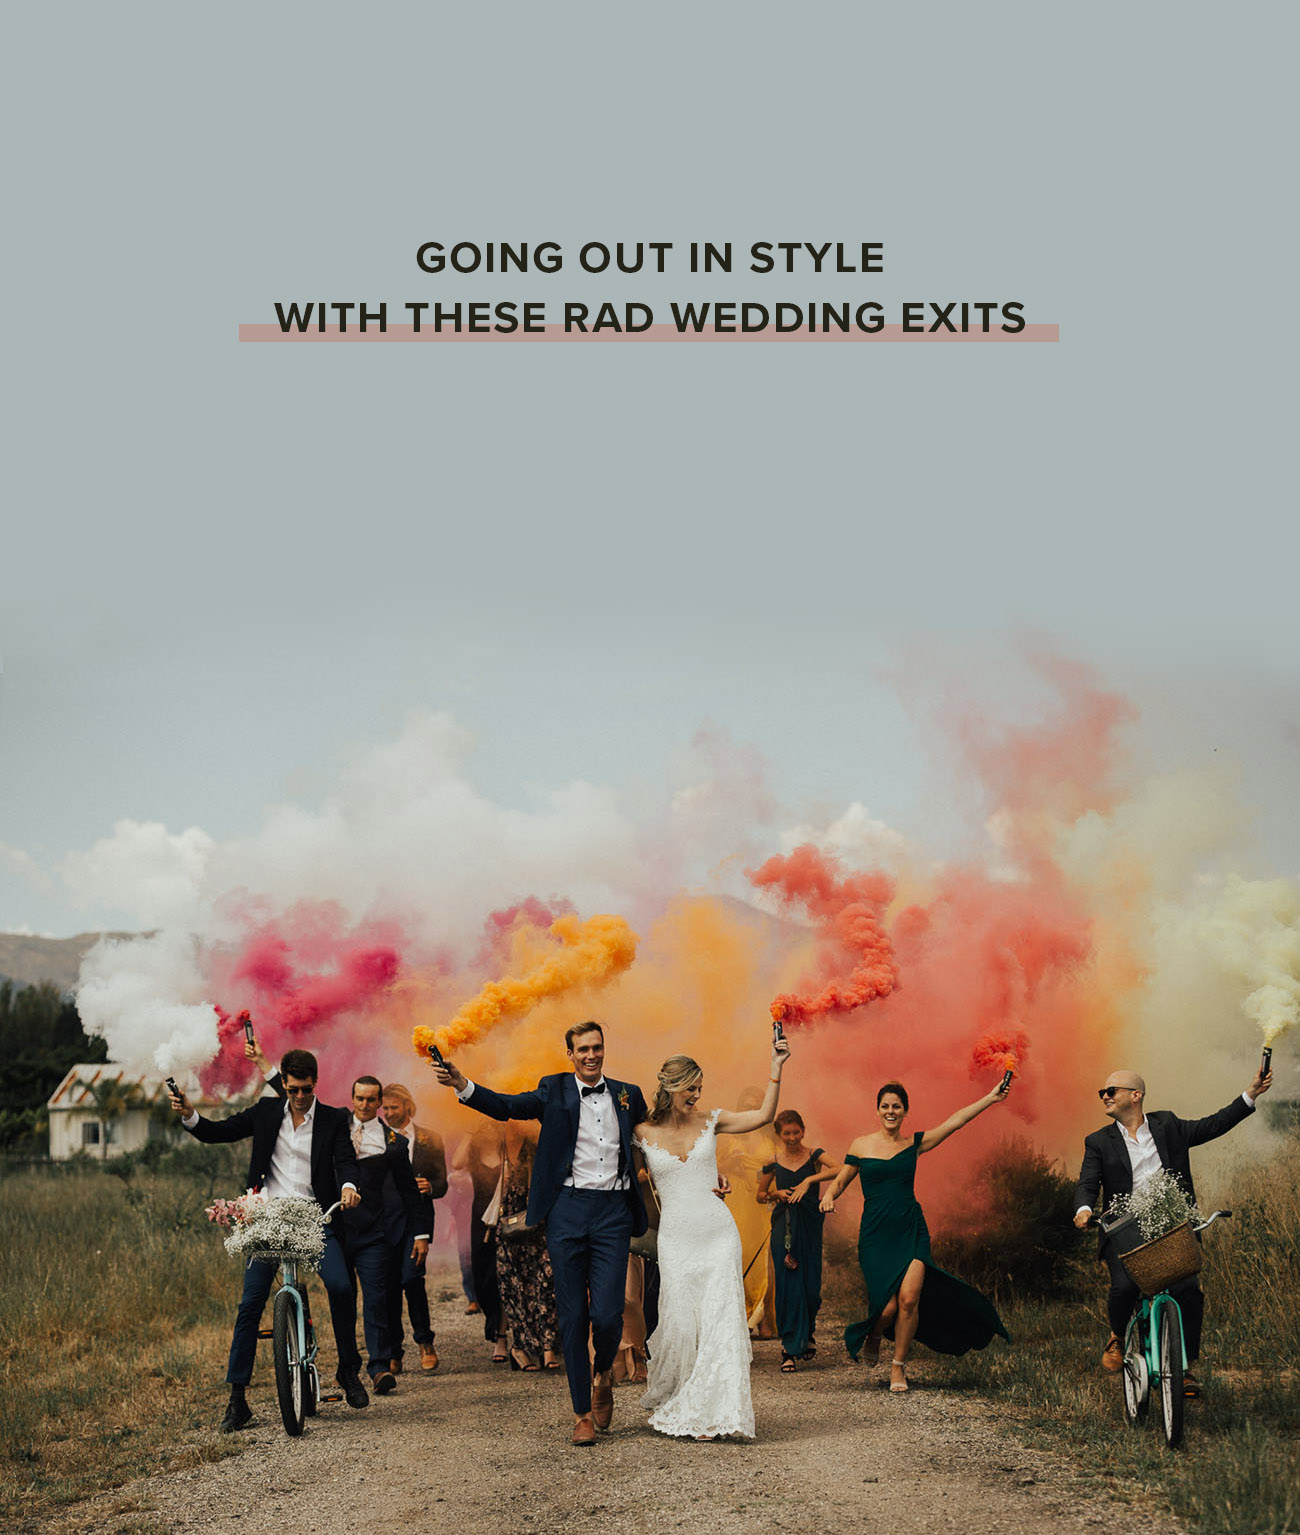 wedding exit ideas colorful smoke bomb